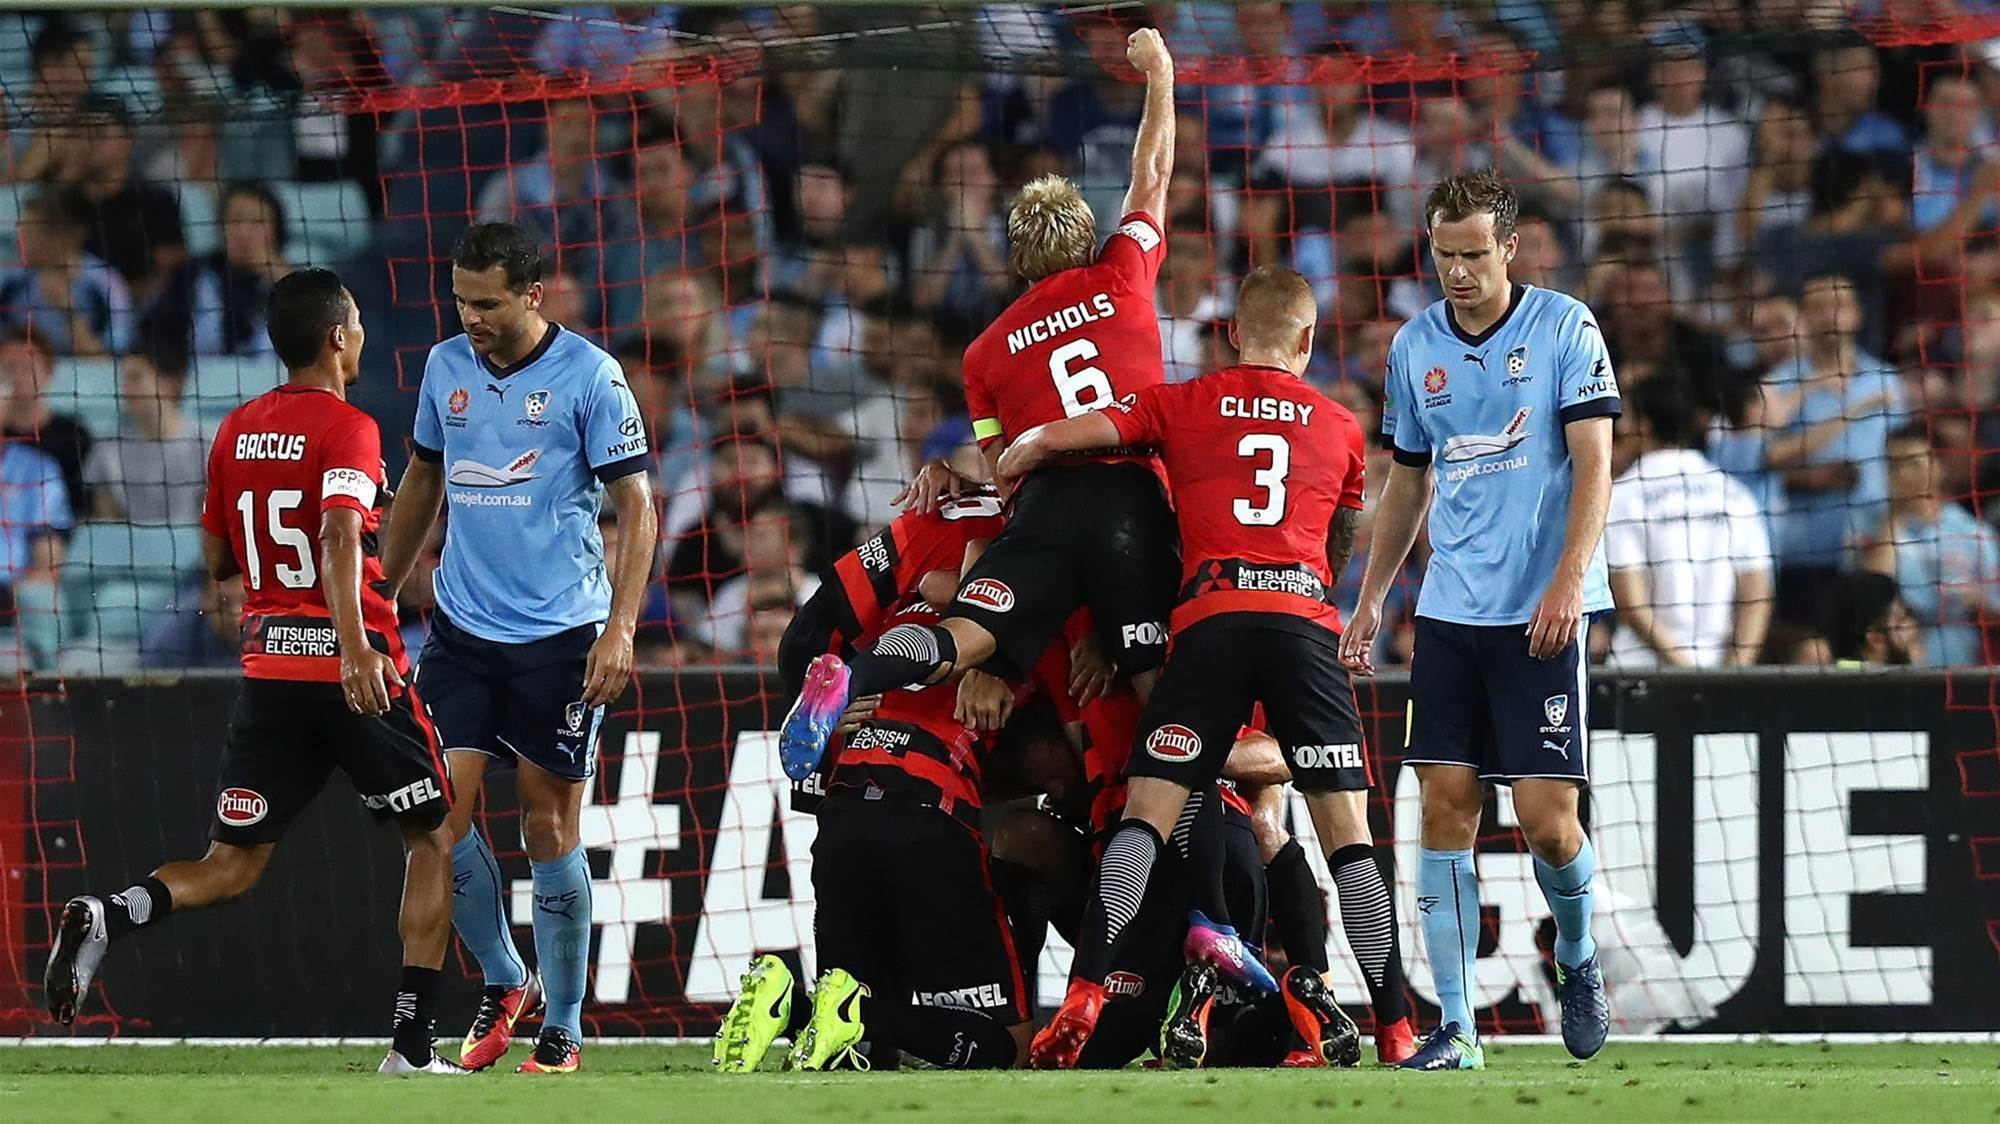 It's over! Wanderers end Sydney's unbeaten run